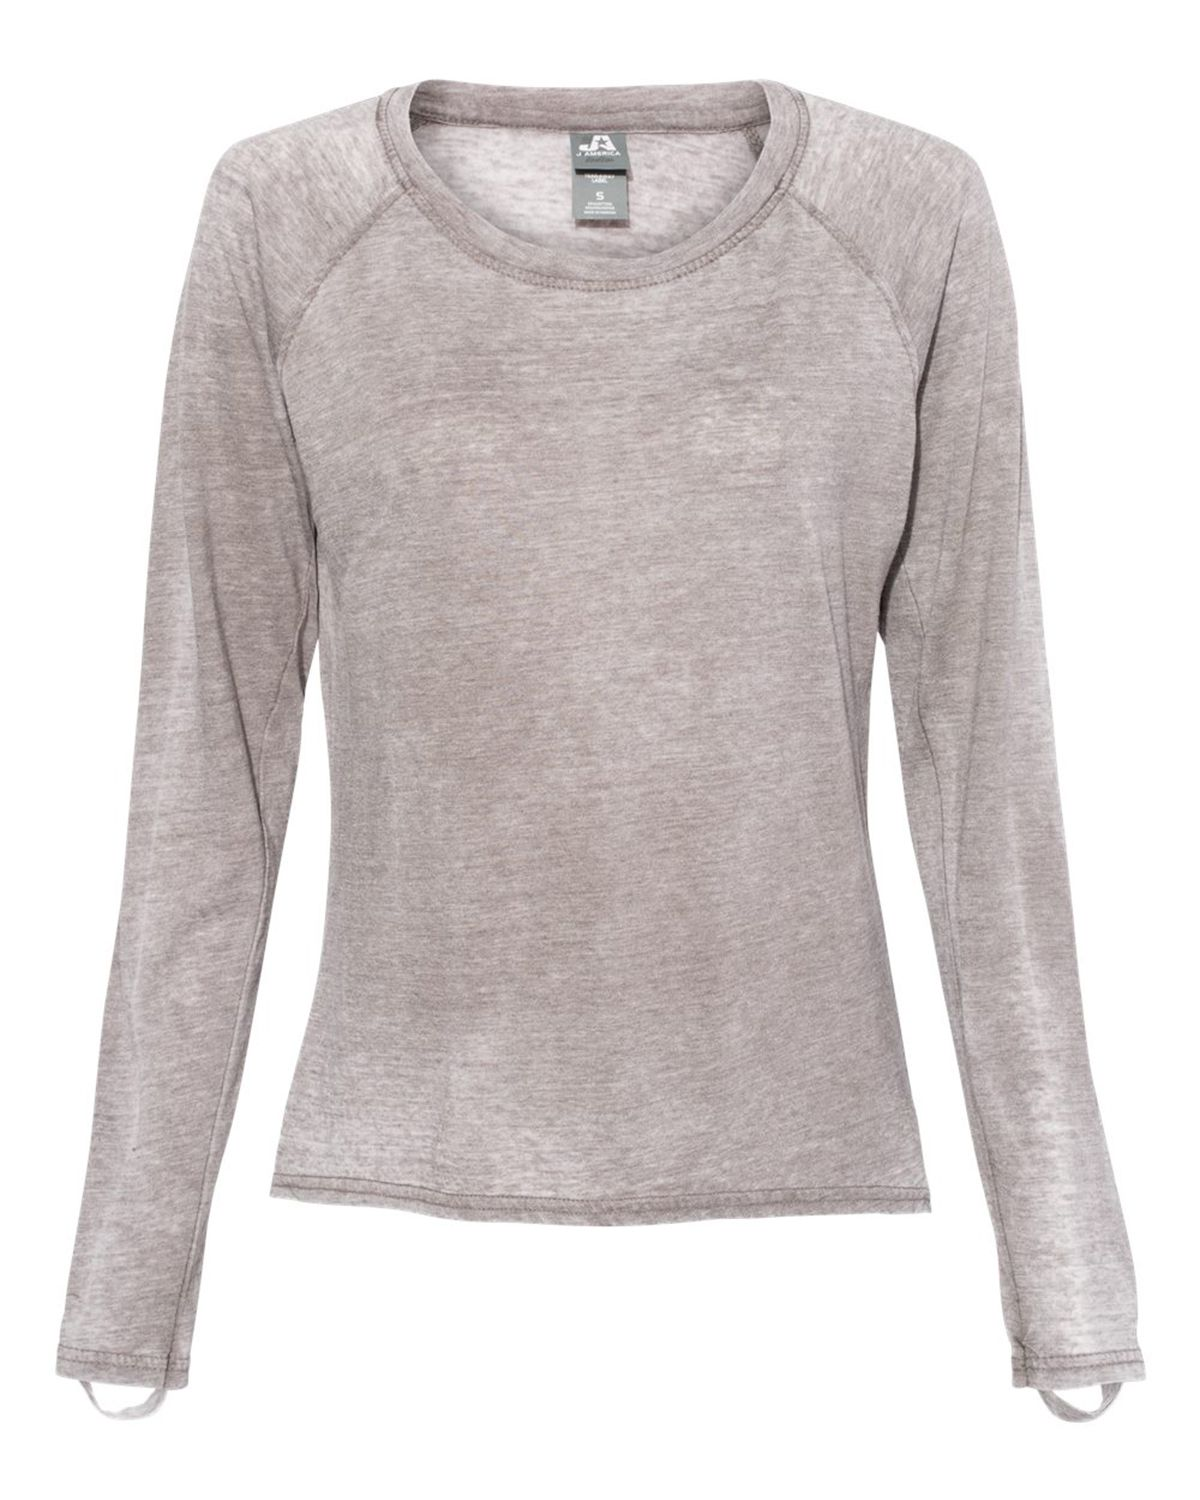 J America 8118 Women's Zen Jersey Hi-Low Long Sleeve T-Shirt - Cement - S from J America